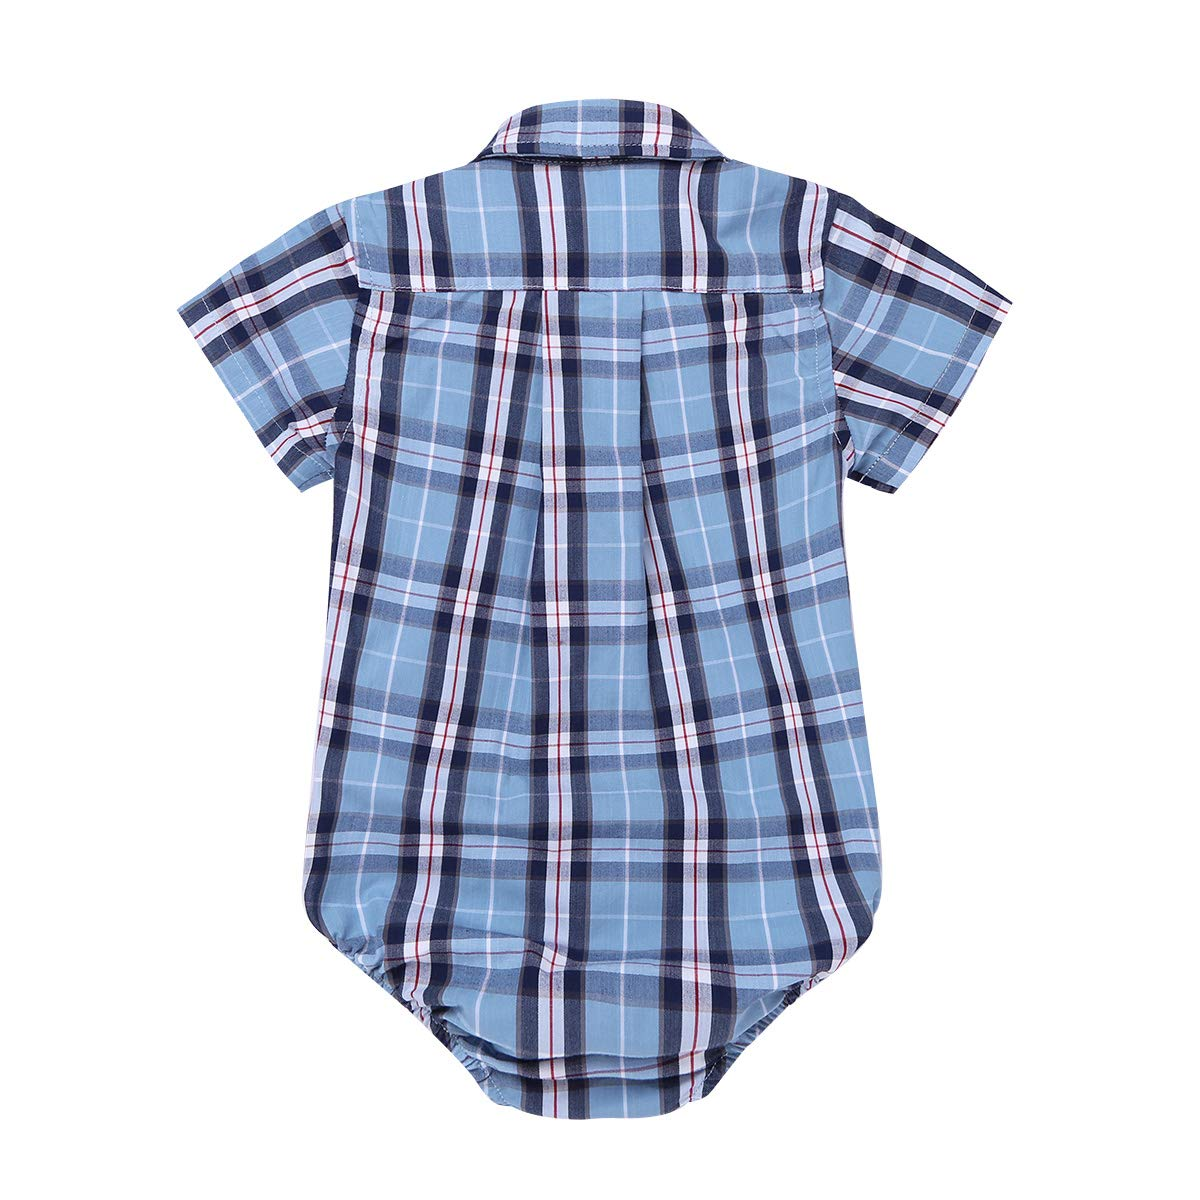 CHICTRY Infant Baby Boys Gentleman Style Romper Shirt Short Sleeve Plaid Jumpsuit Clothes